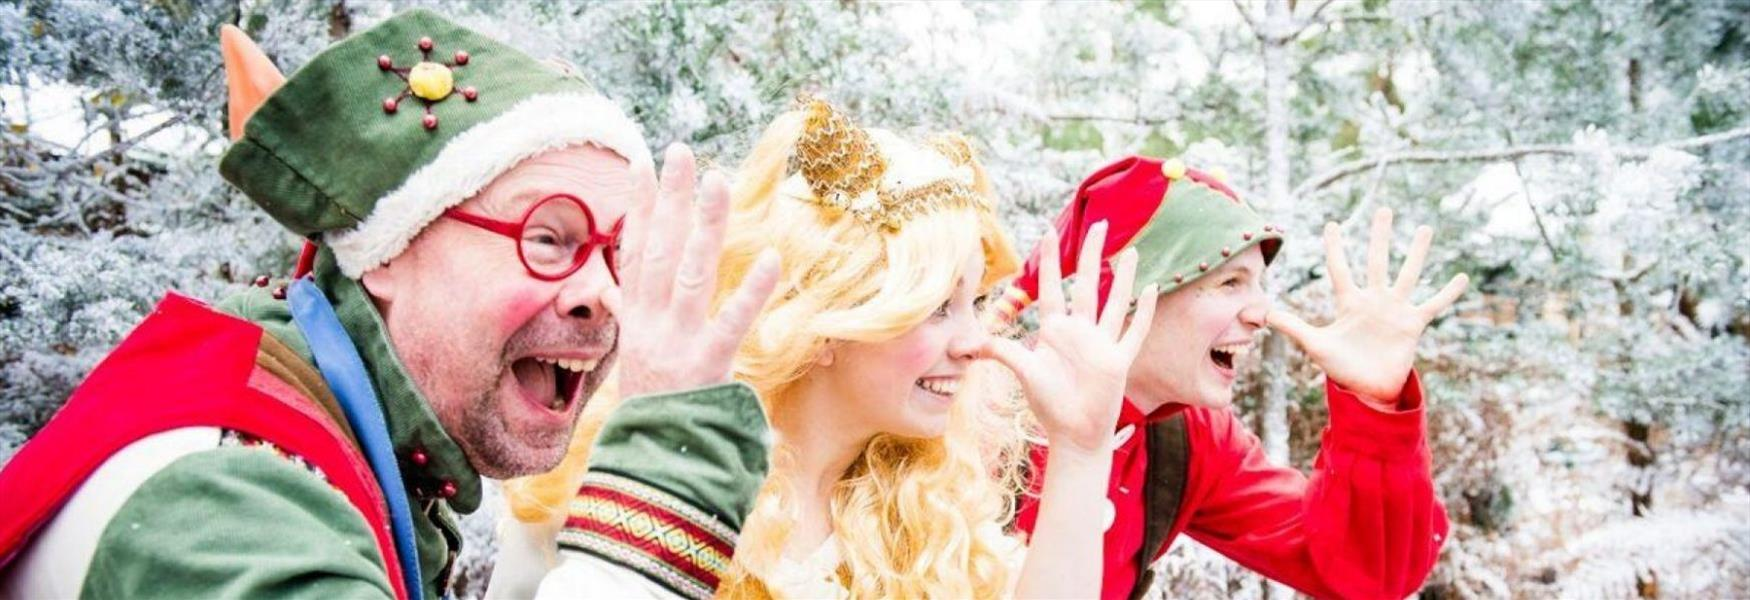 Enjoy the most magical, mystical, Elftastic day of your lives at LaplandUK!